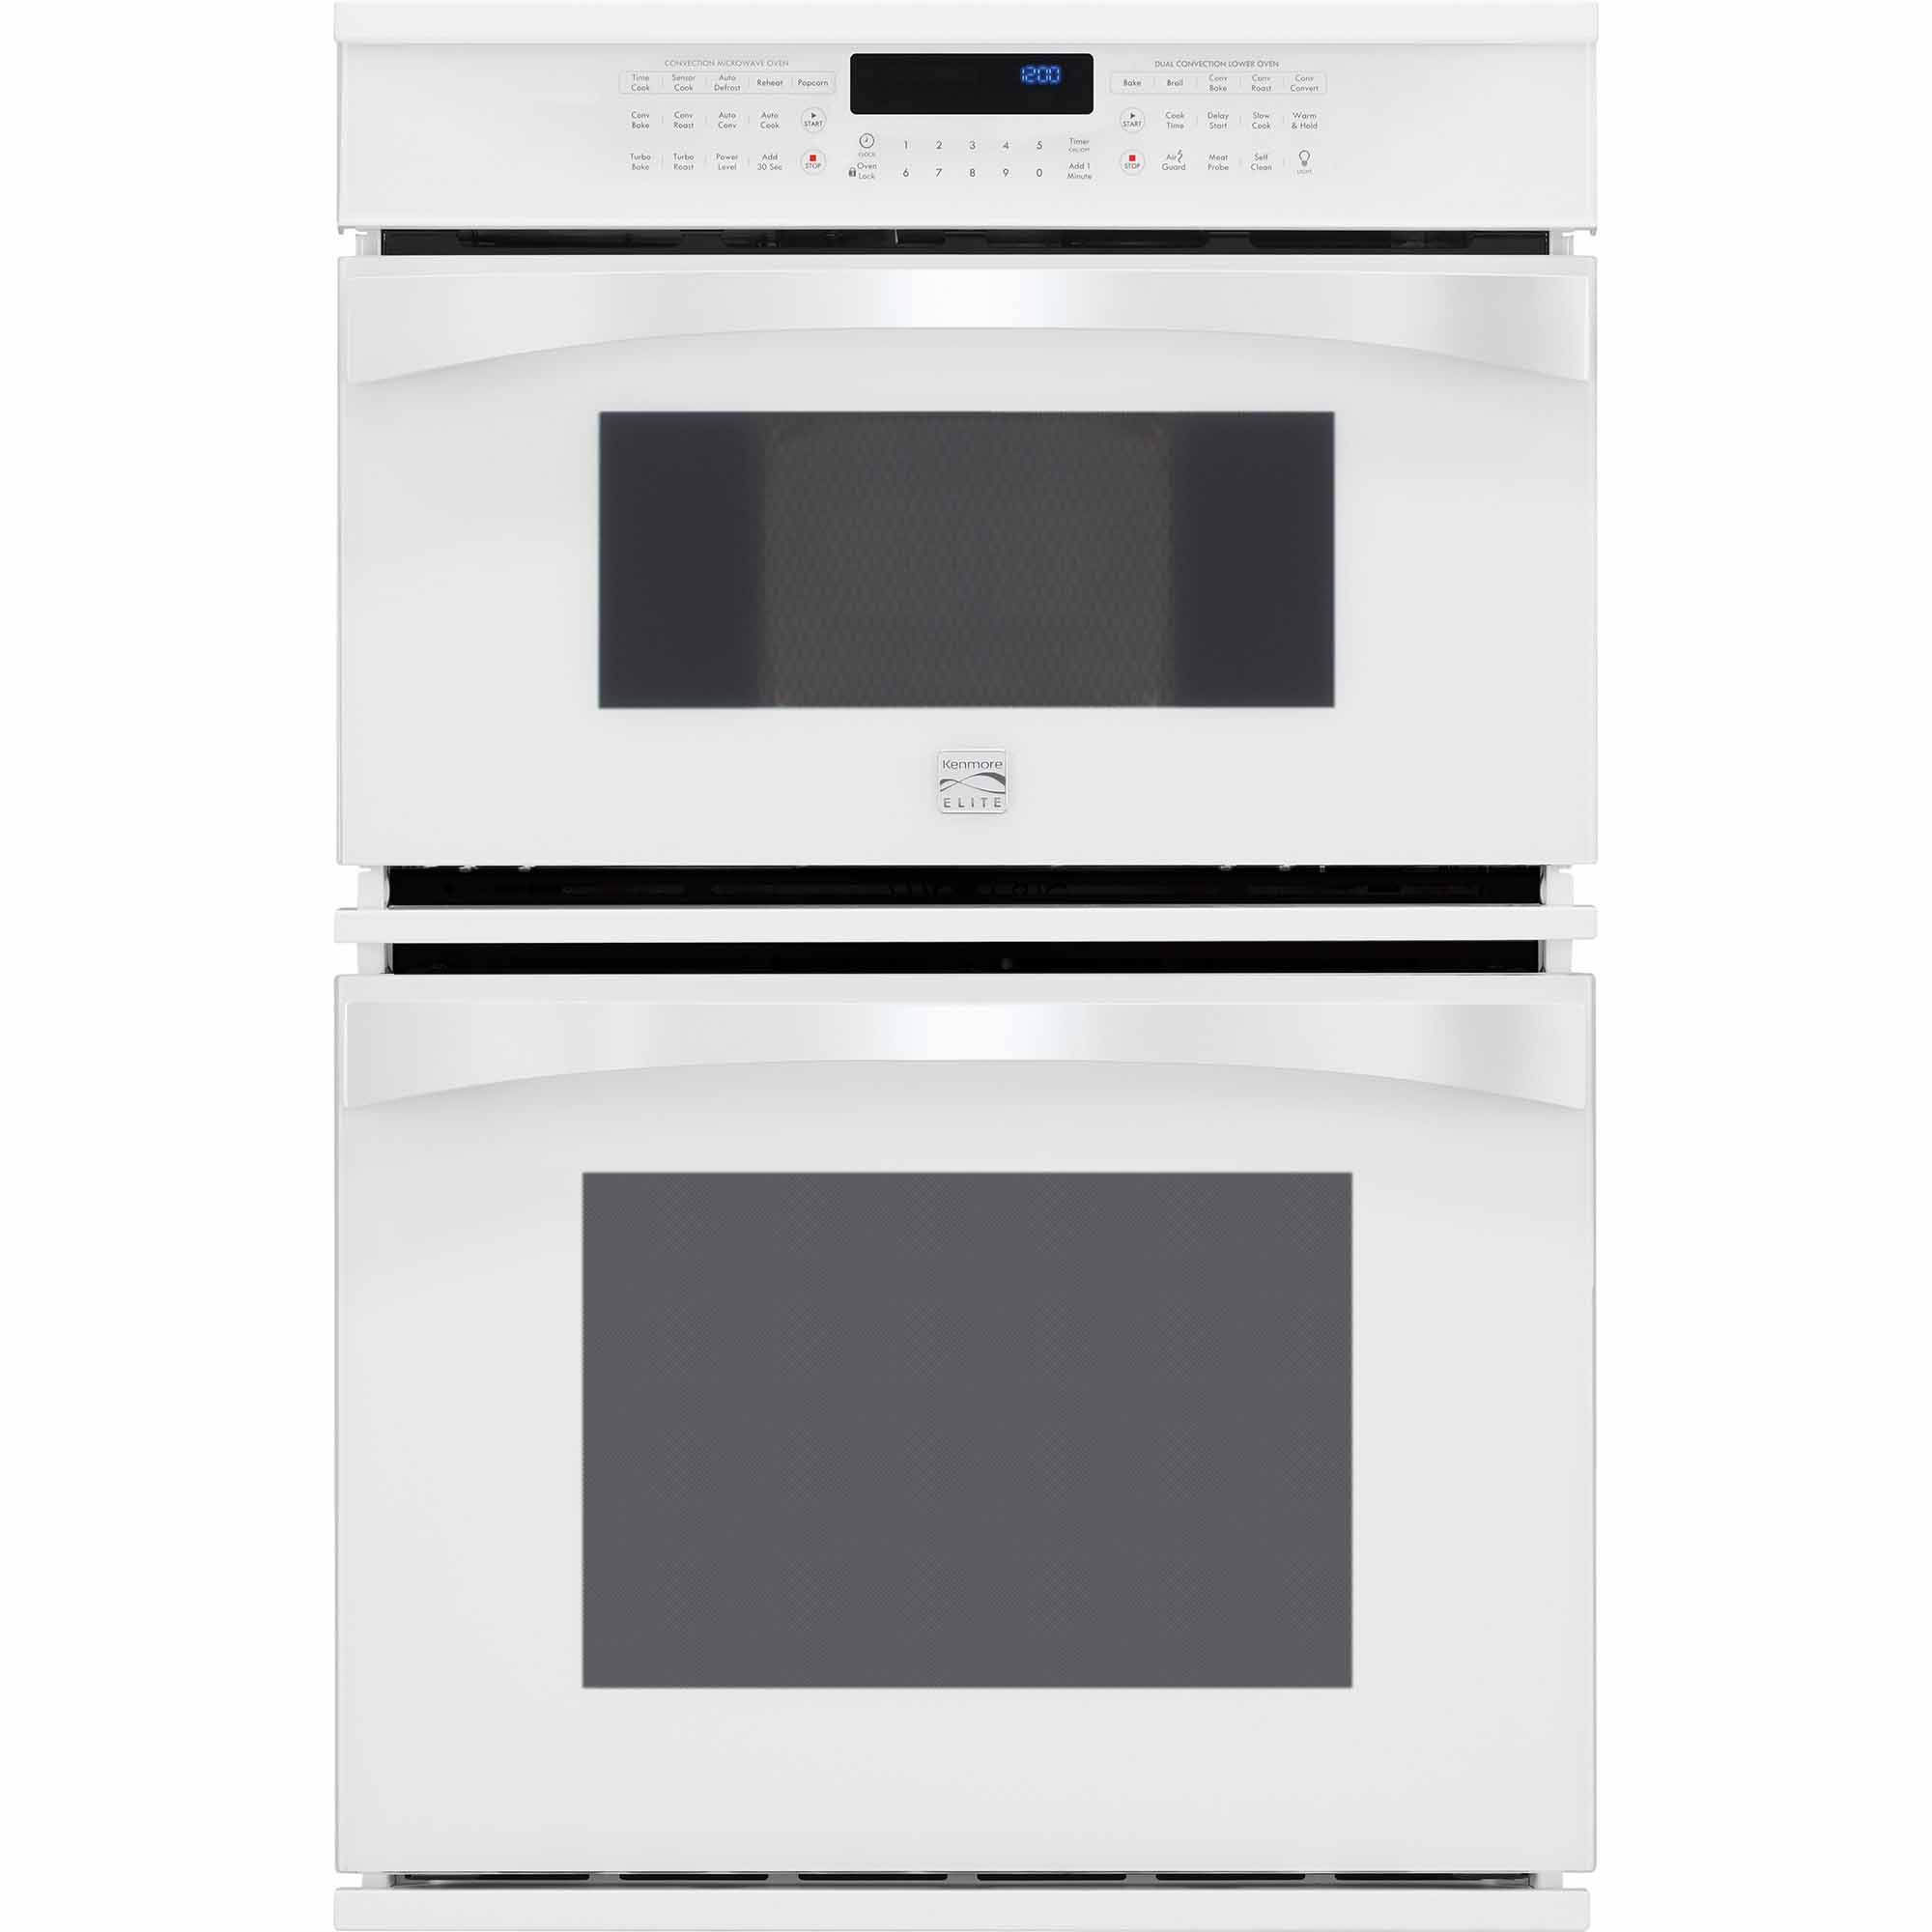 Kenmore Elite 49112 30 Electric Combination Oven - White